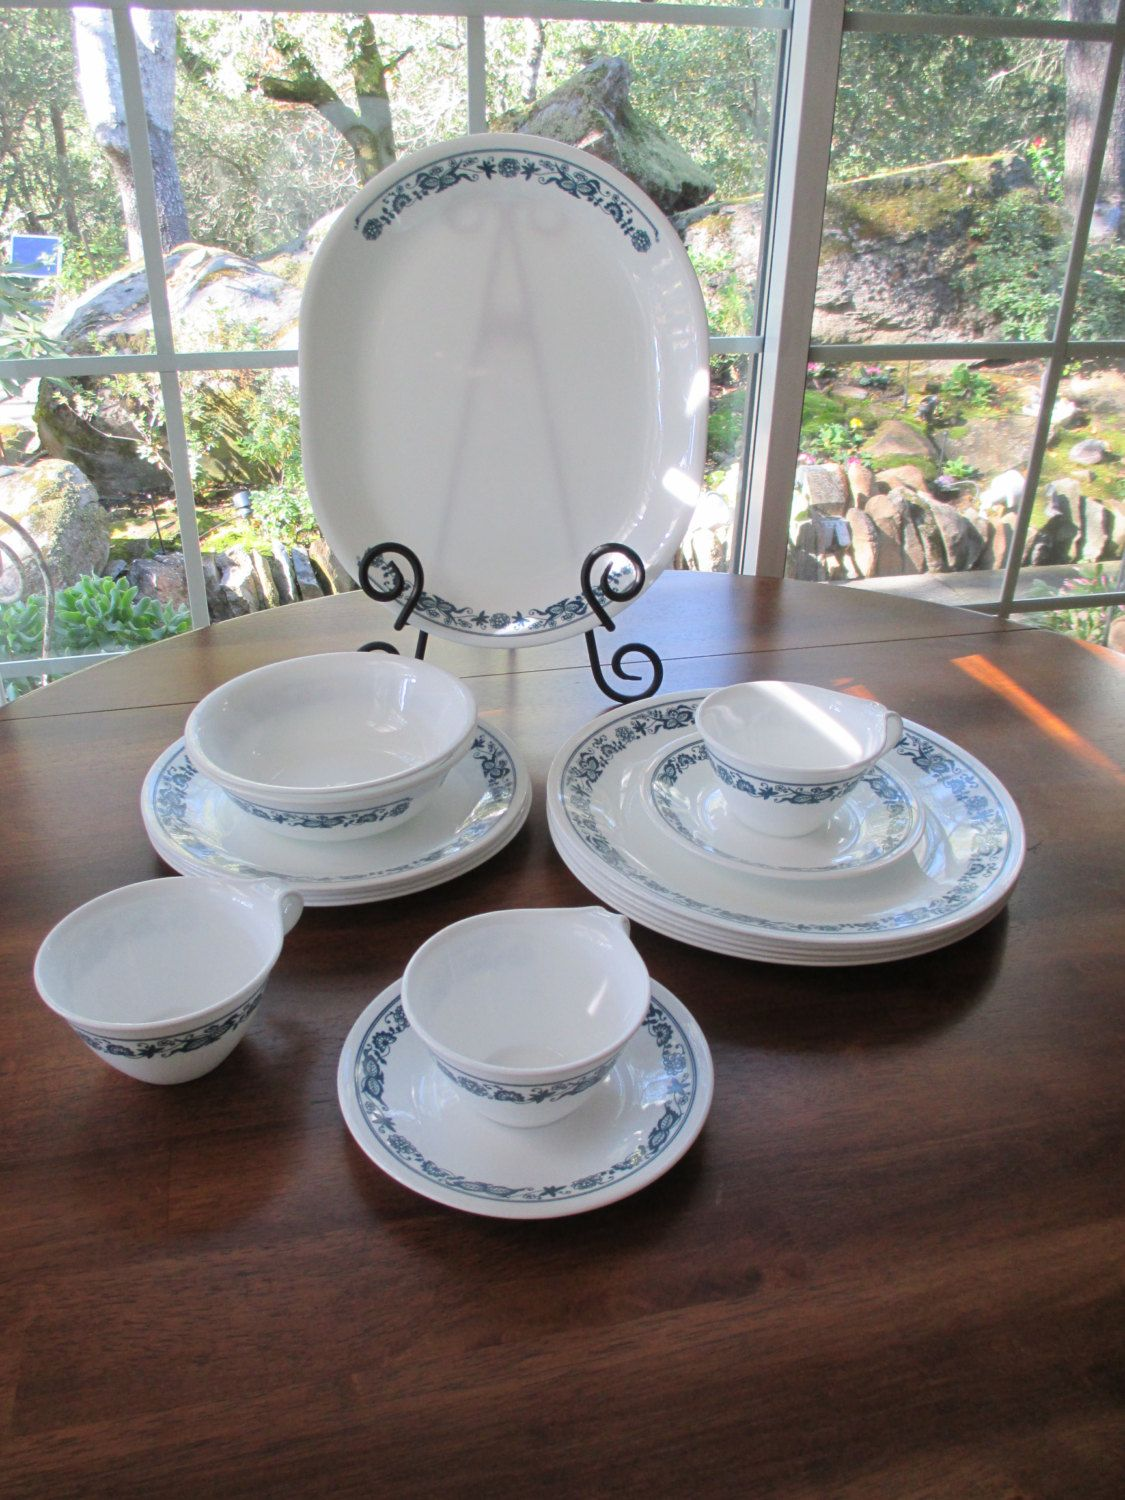 Vintage Corelle Old Town Blue Dinnerware Set by aprilleialoha $25.00 & Vintage Corelle Old Town Blue Dinnerware Set by aprilleialoha ...